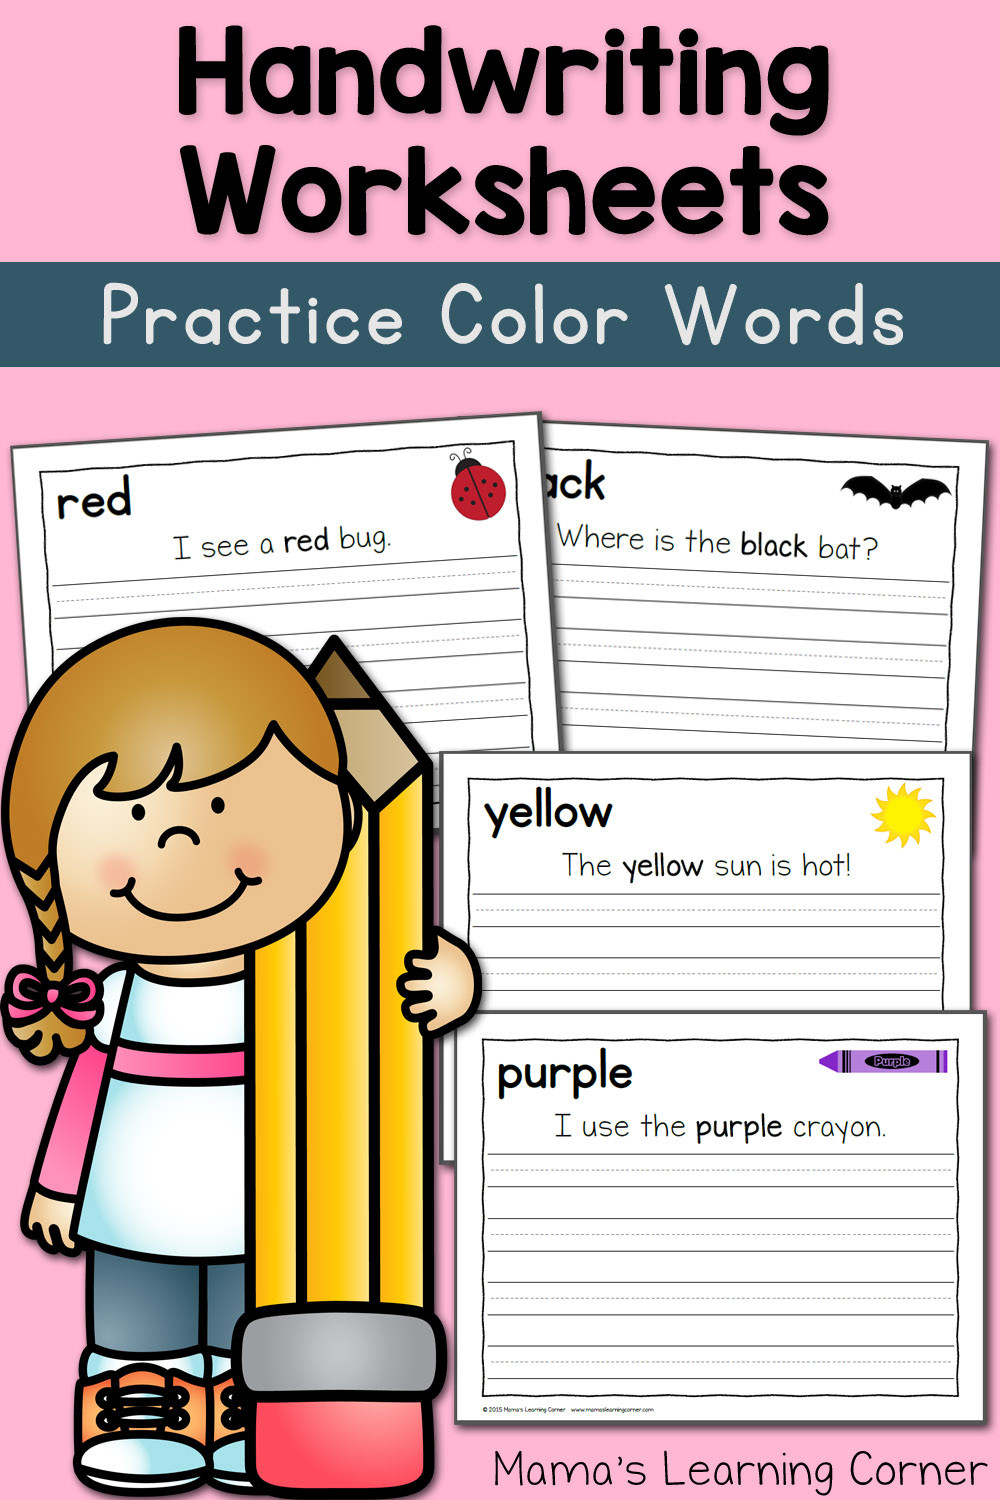 Color Words Handwriting Worksheets Handwriting Worksheets for Kids Color Words Mamas